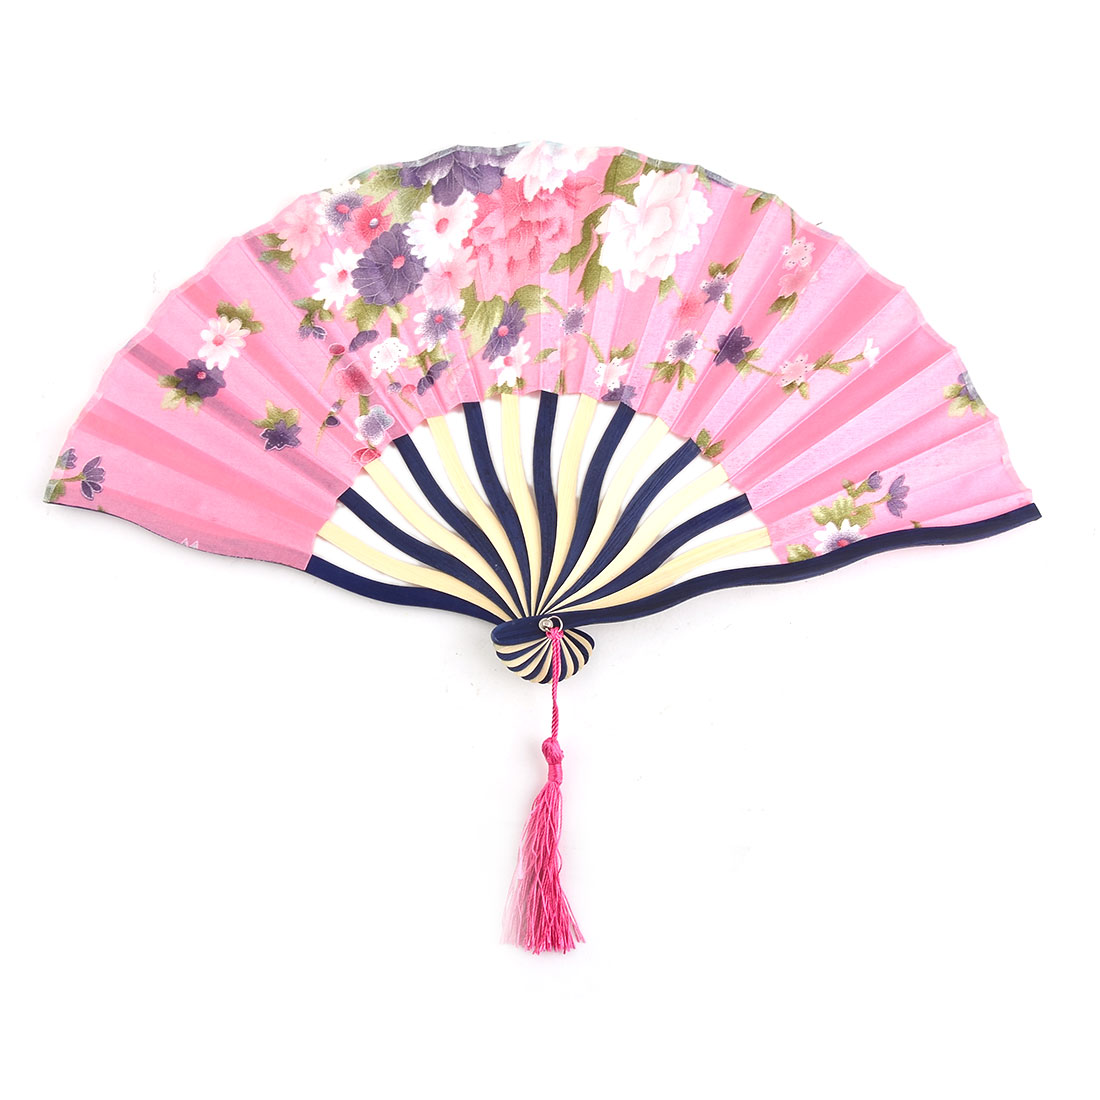 Climbing Polyester Flower Pattern Tassel Ornament Folding Hand Fan 8.3 Inches Length